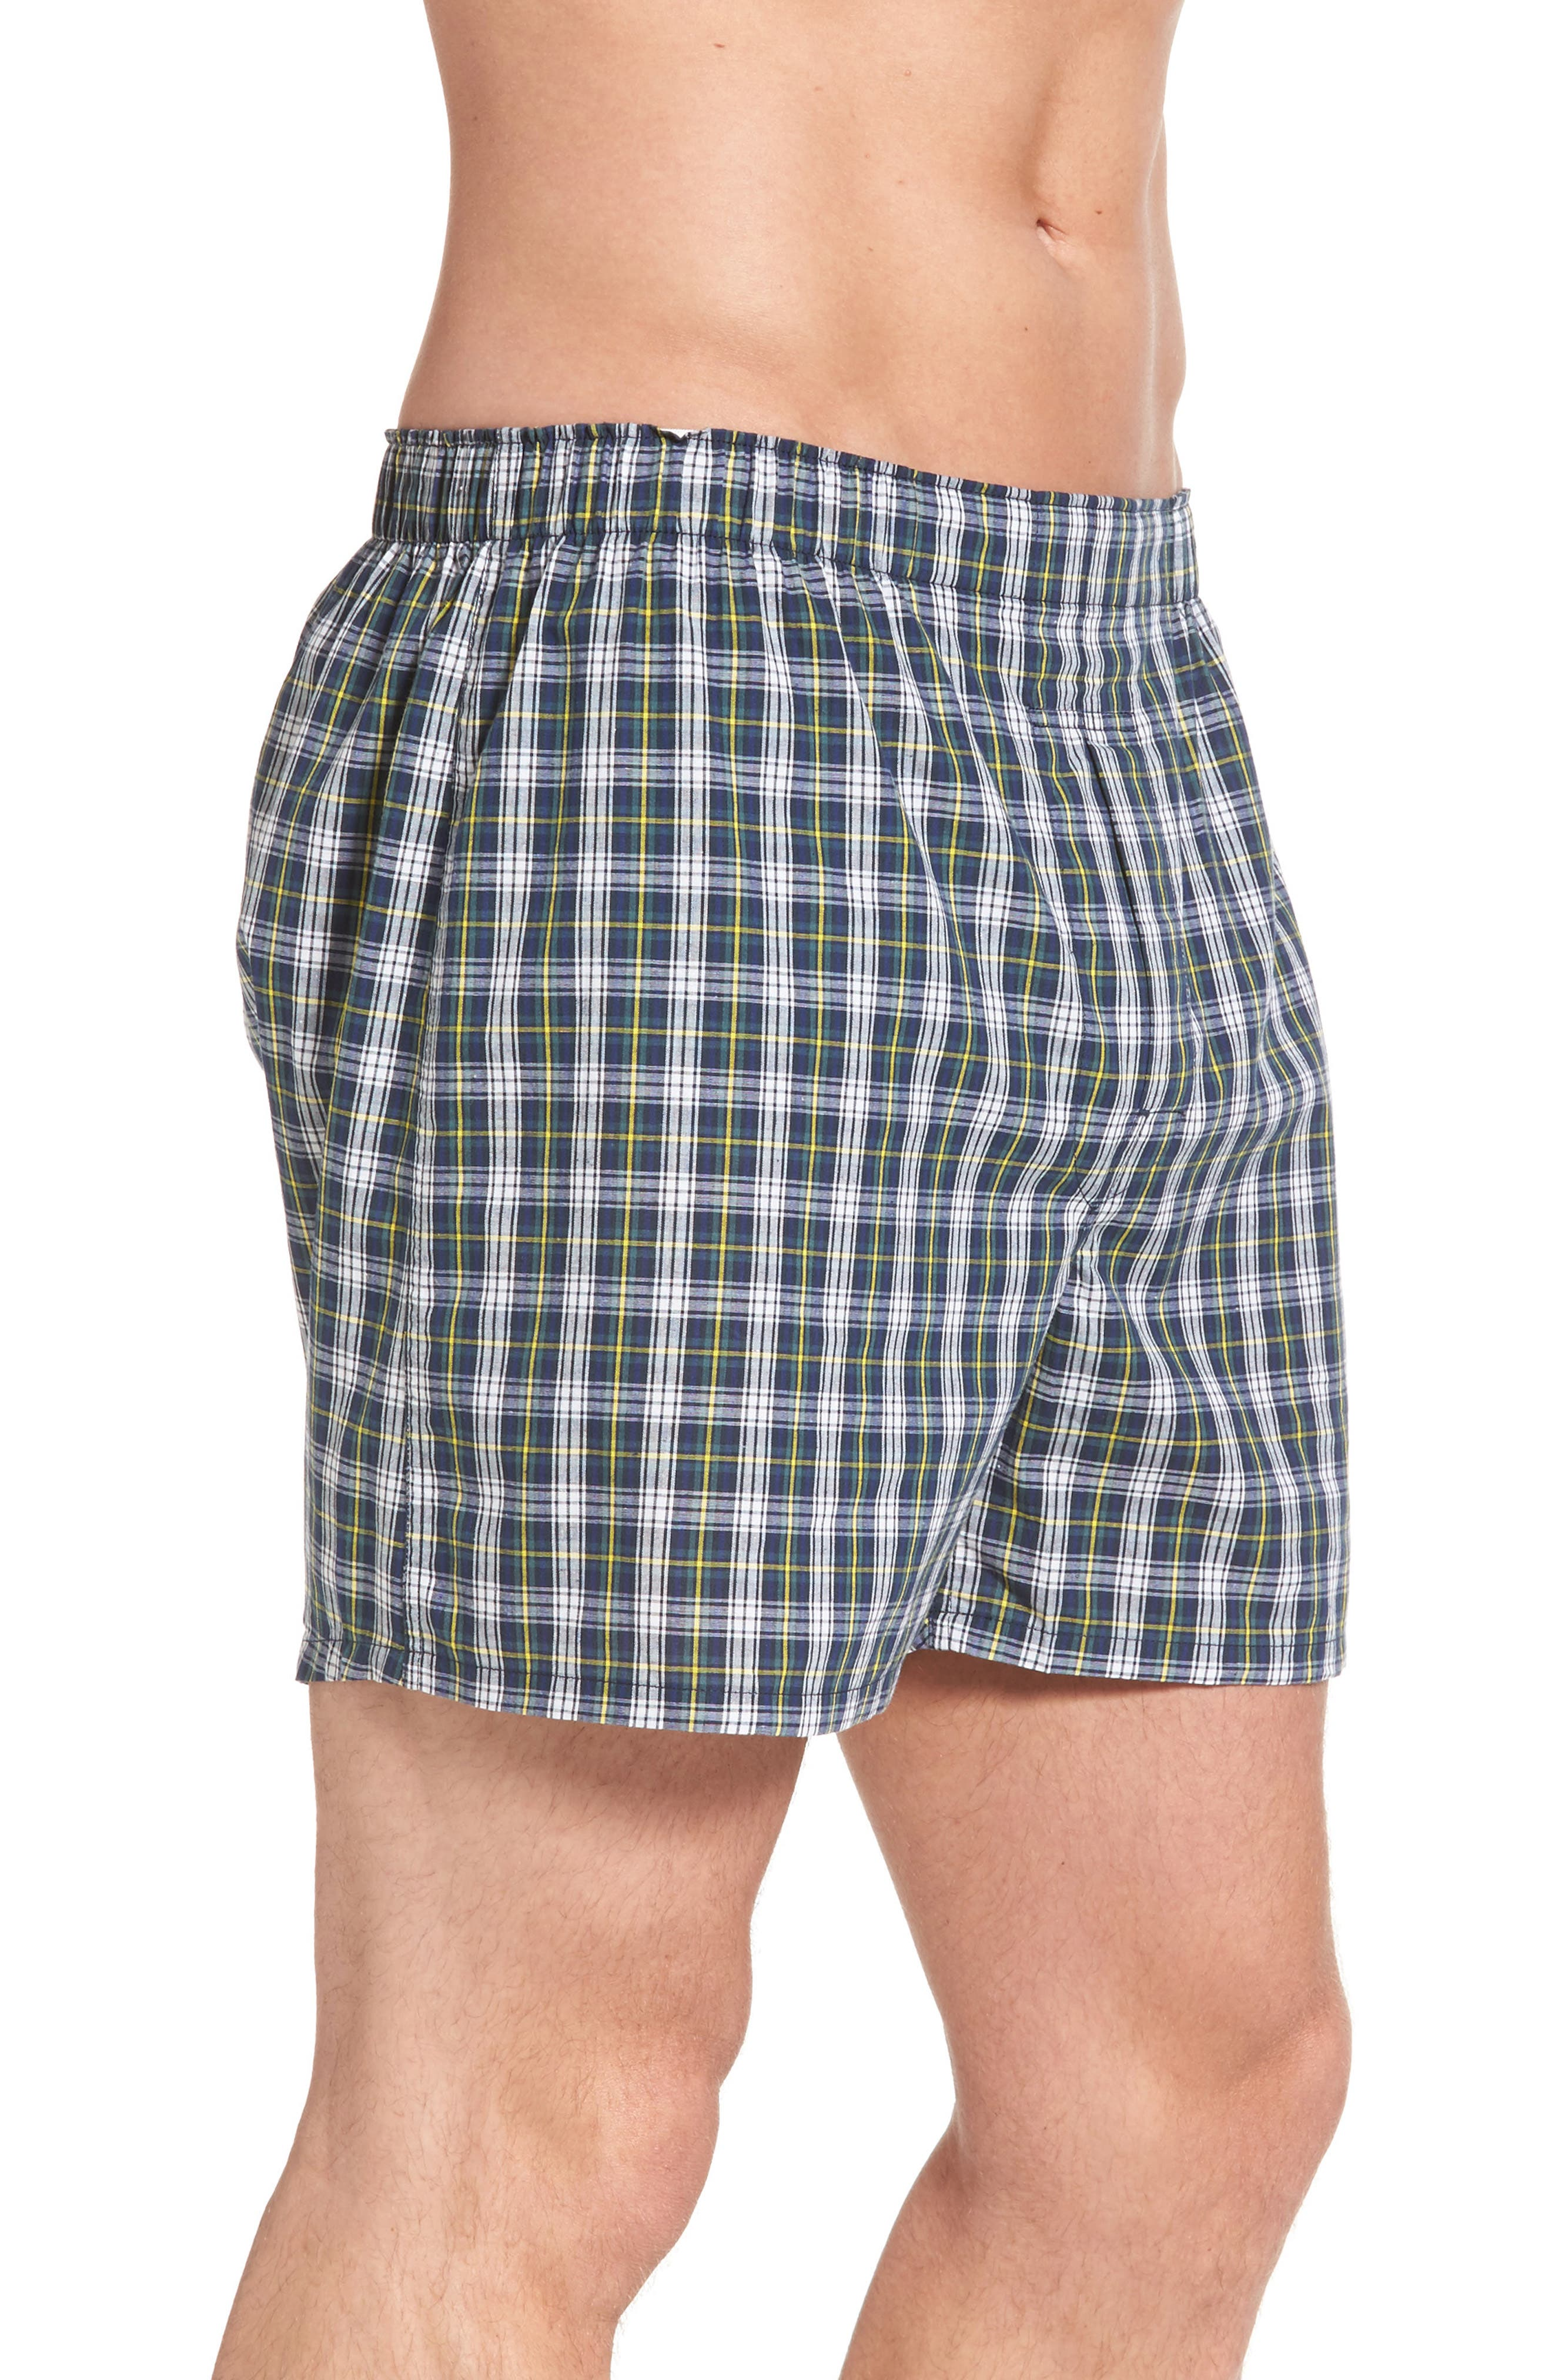 Assorted 3-Pack Woven Cotton Boxers,                             Alternate thumbnail 24, color,